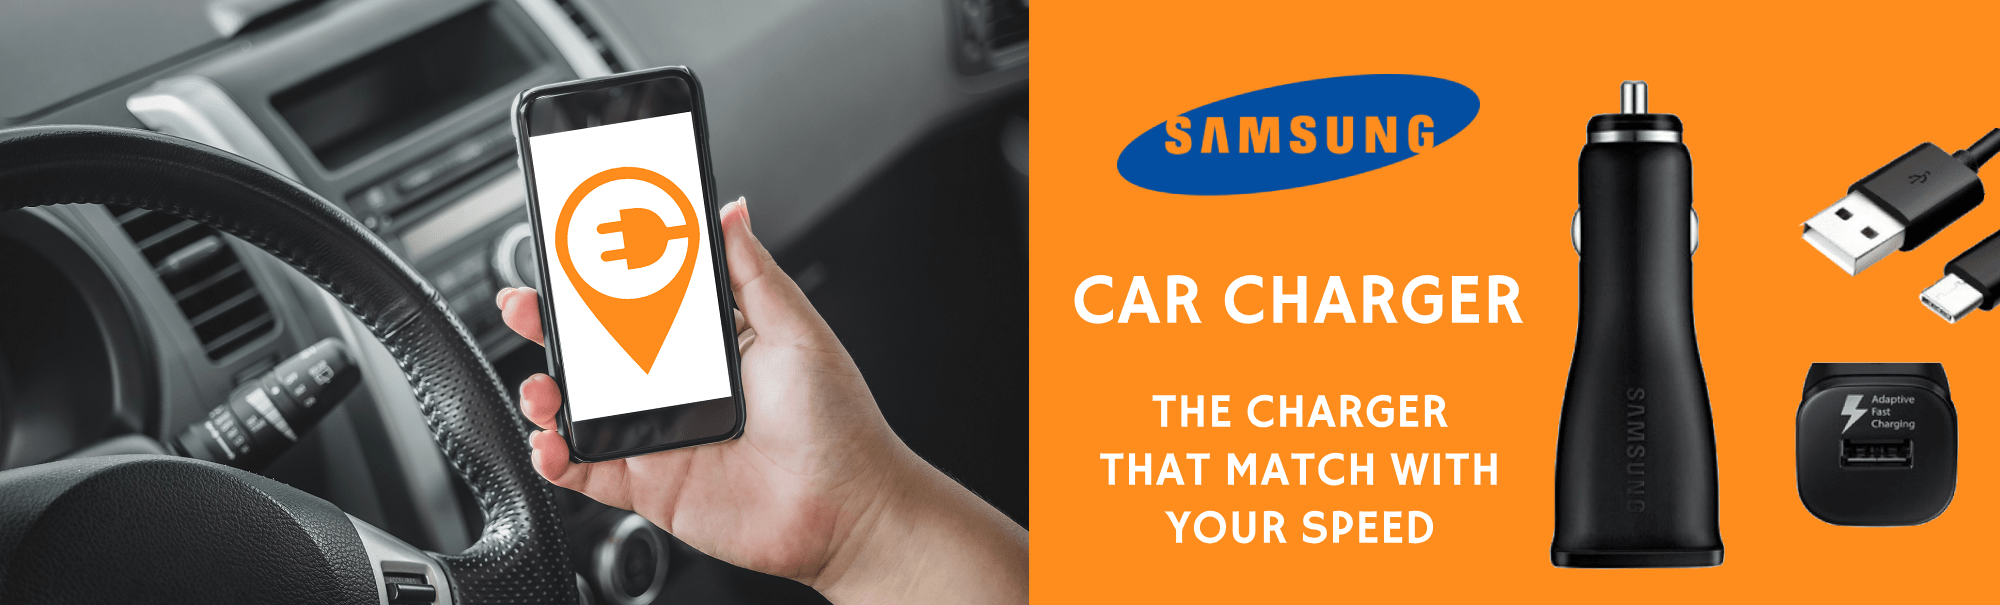 Samsung Car Charger ( Open Box) | Buy Online | Ubuy Kuwait